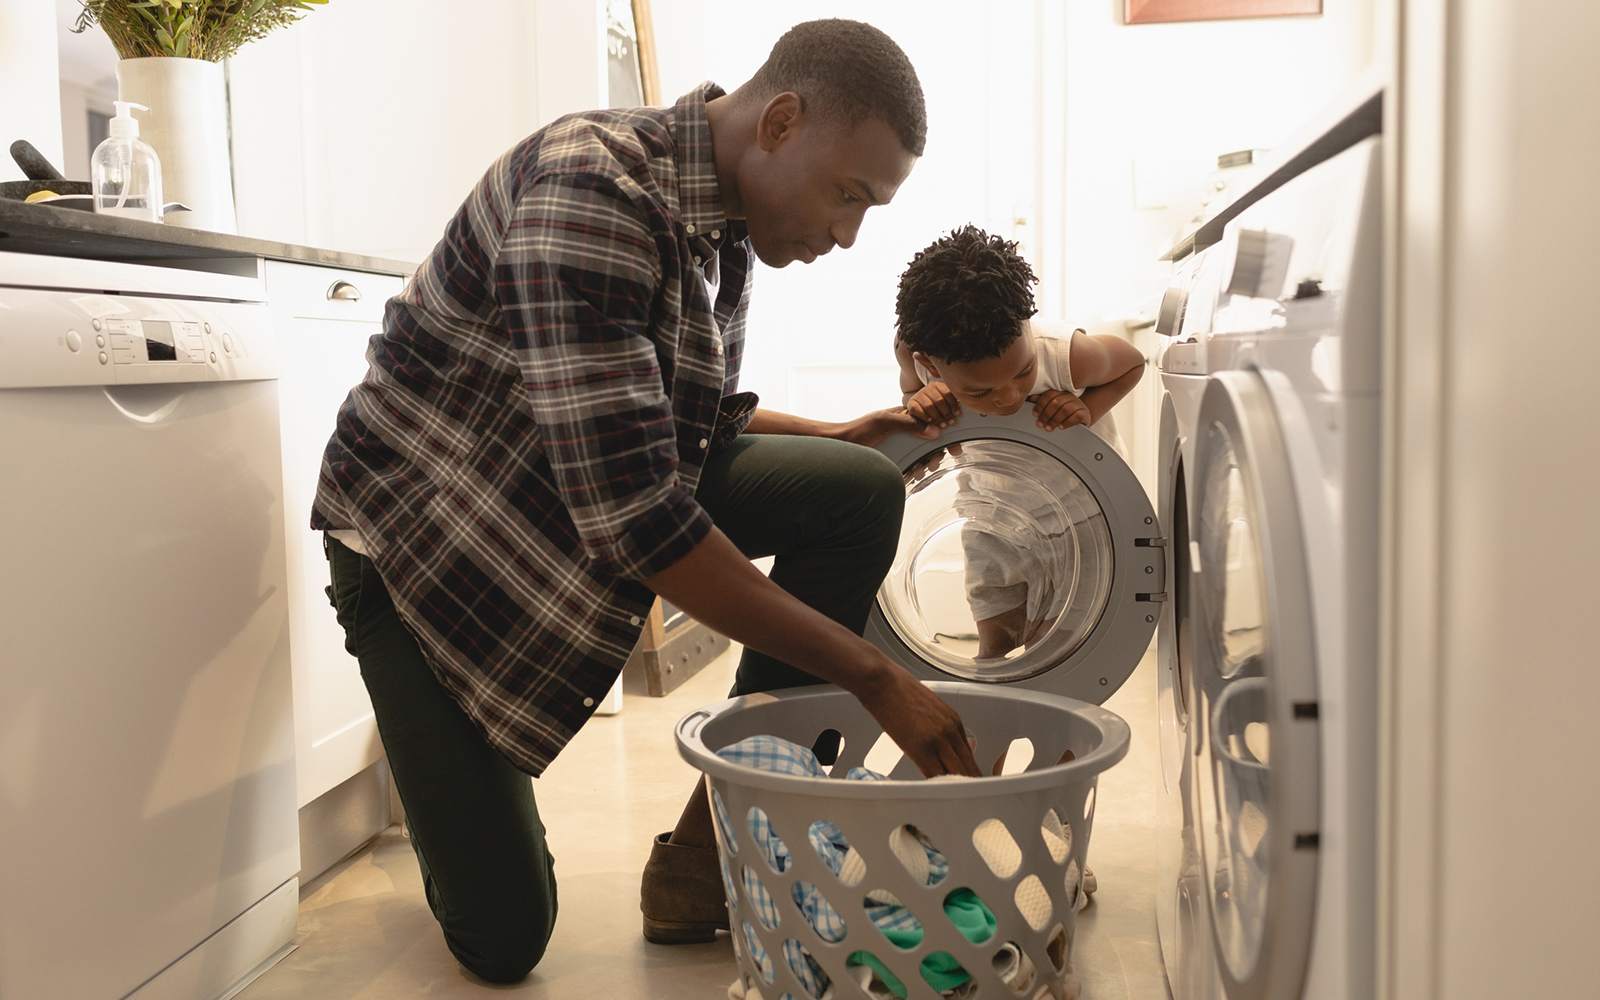 Father and son washing clothes in washing machine